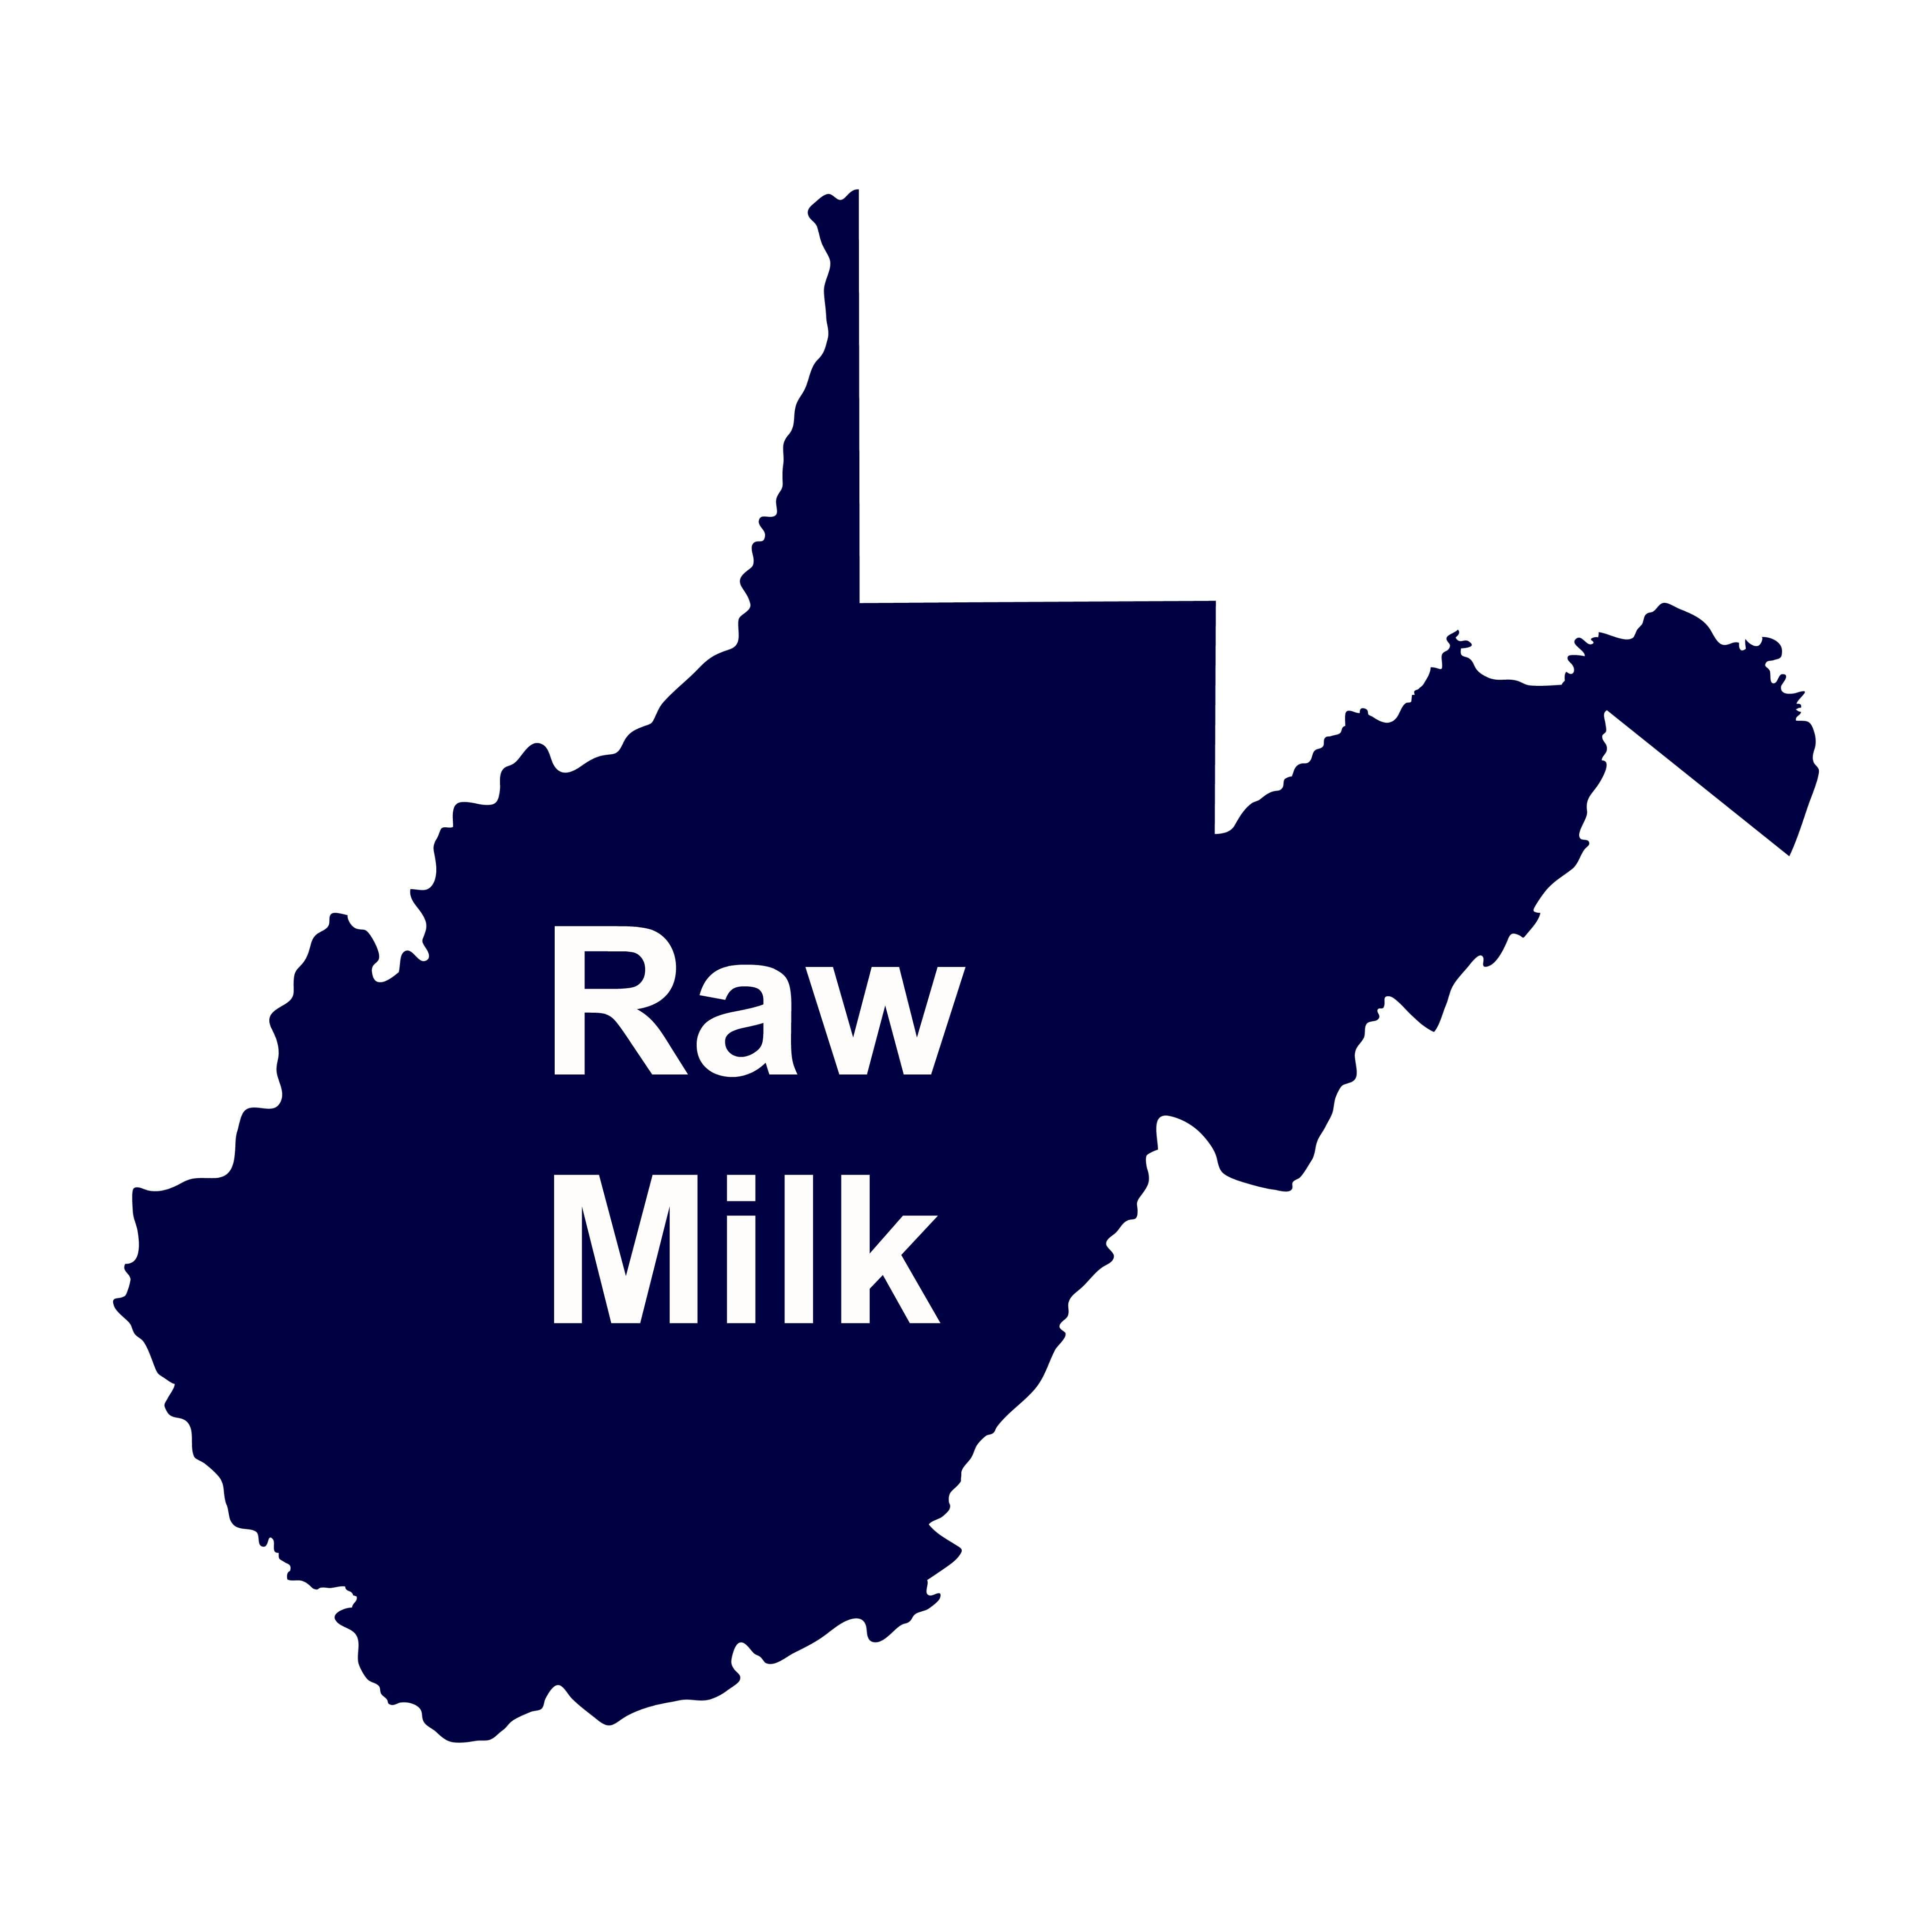 West Virginia Raw Milk: Making the Legal Illegal